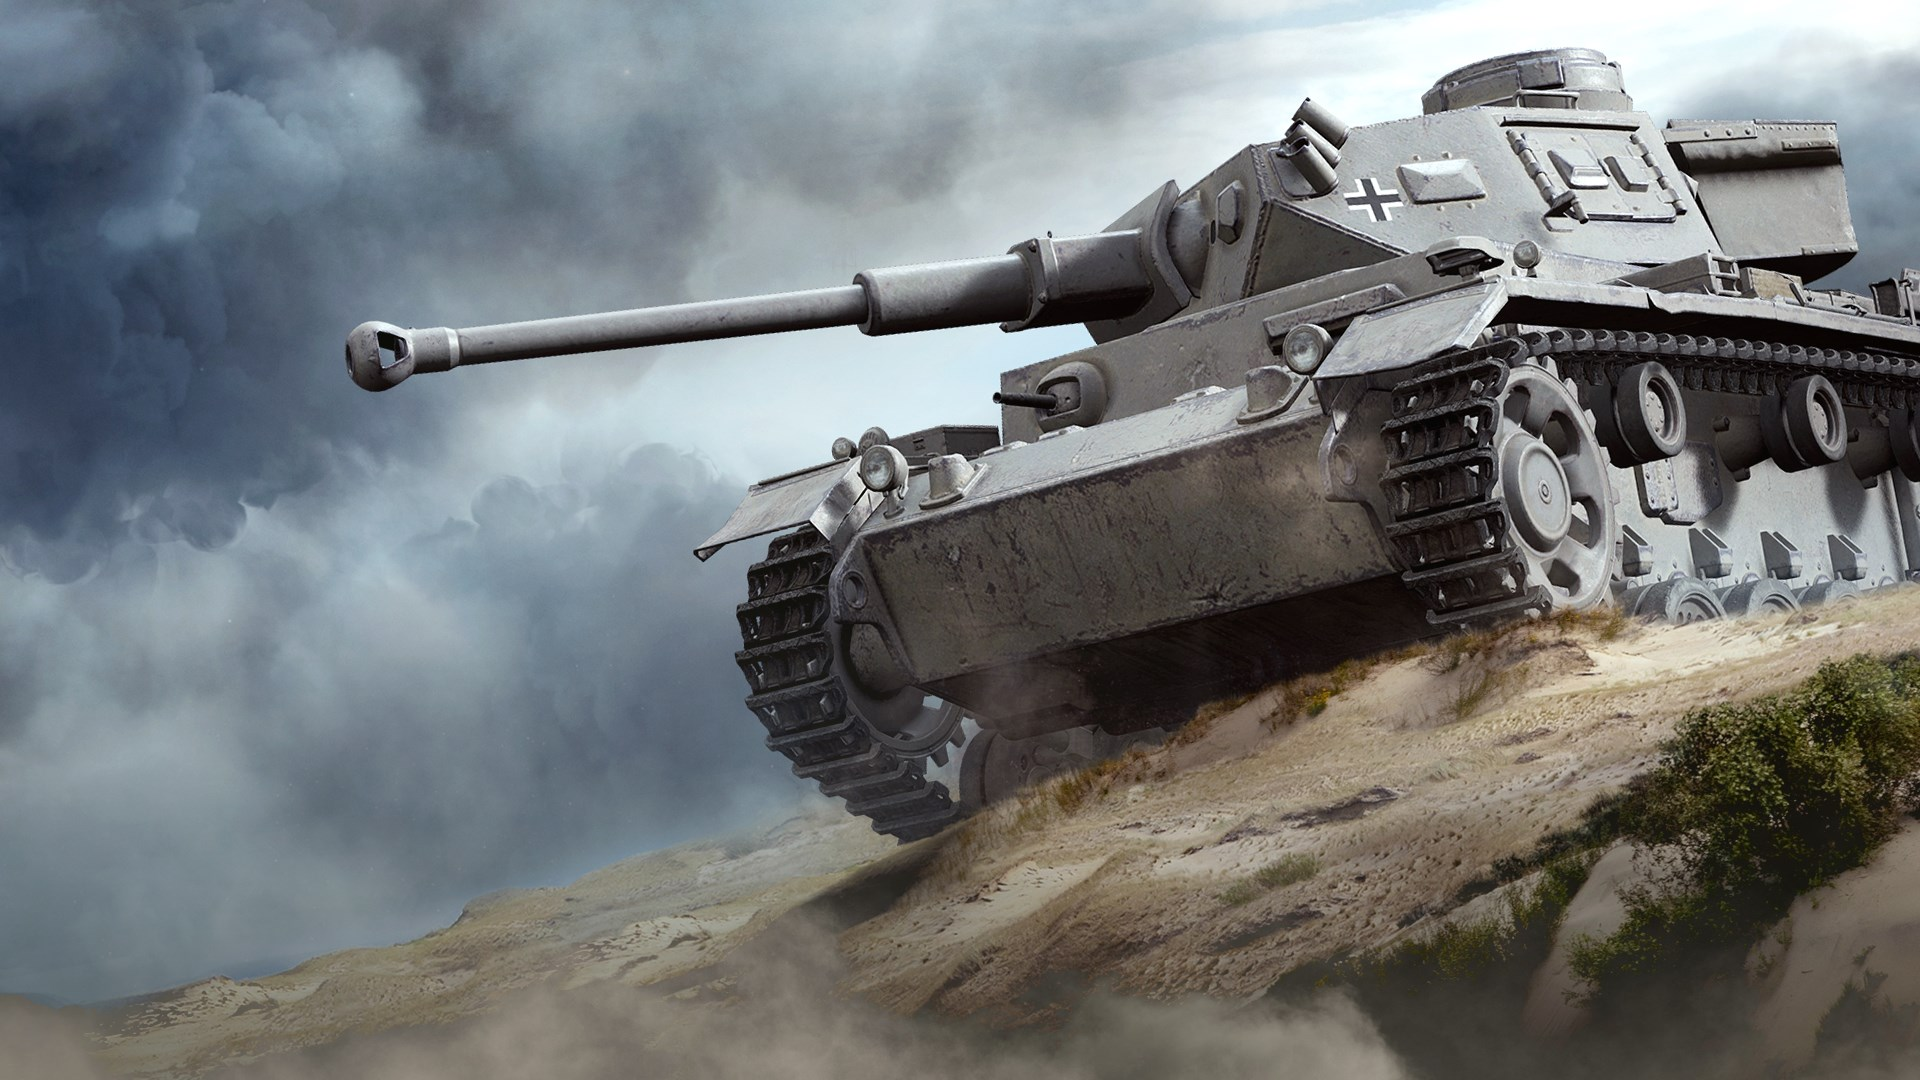 World of Tanks - Pz. III Ausf K Ultimate